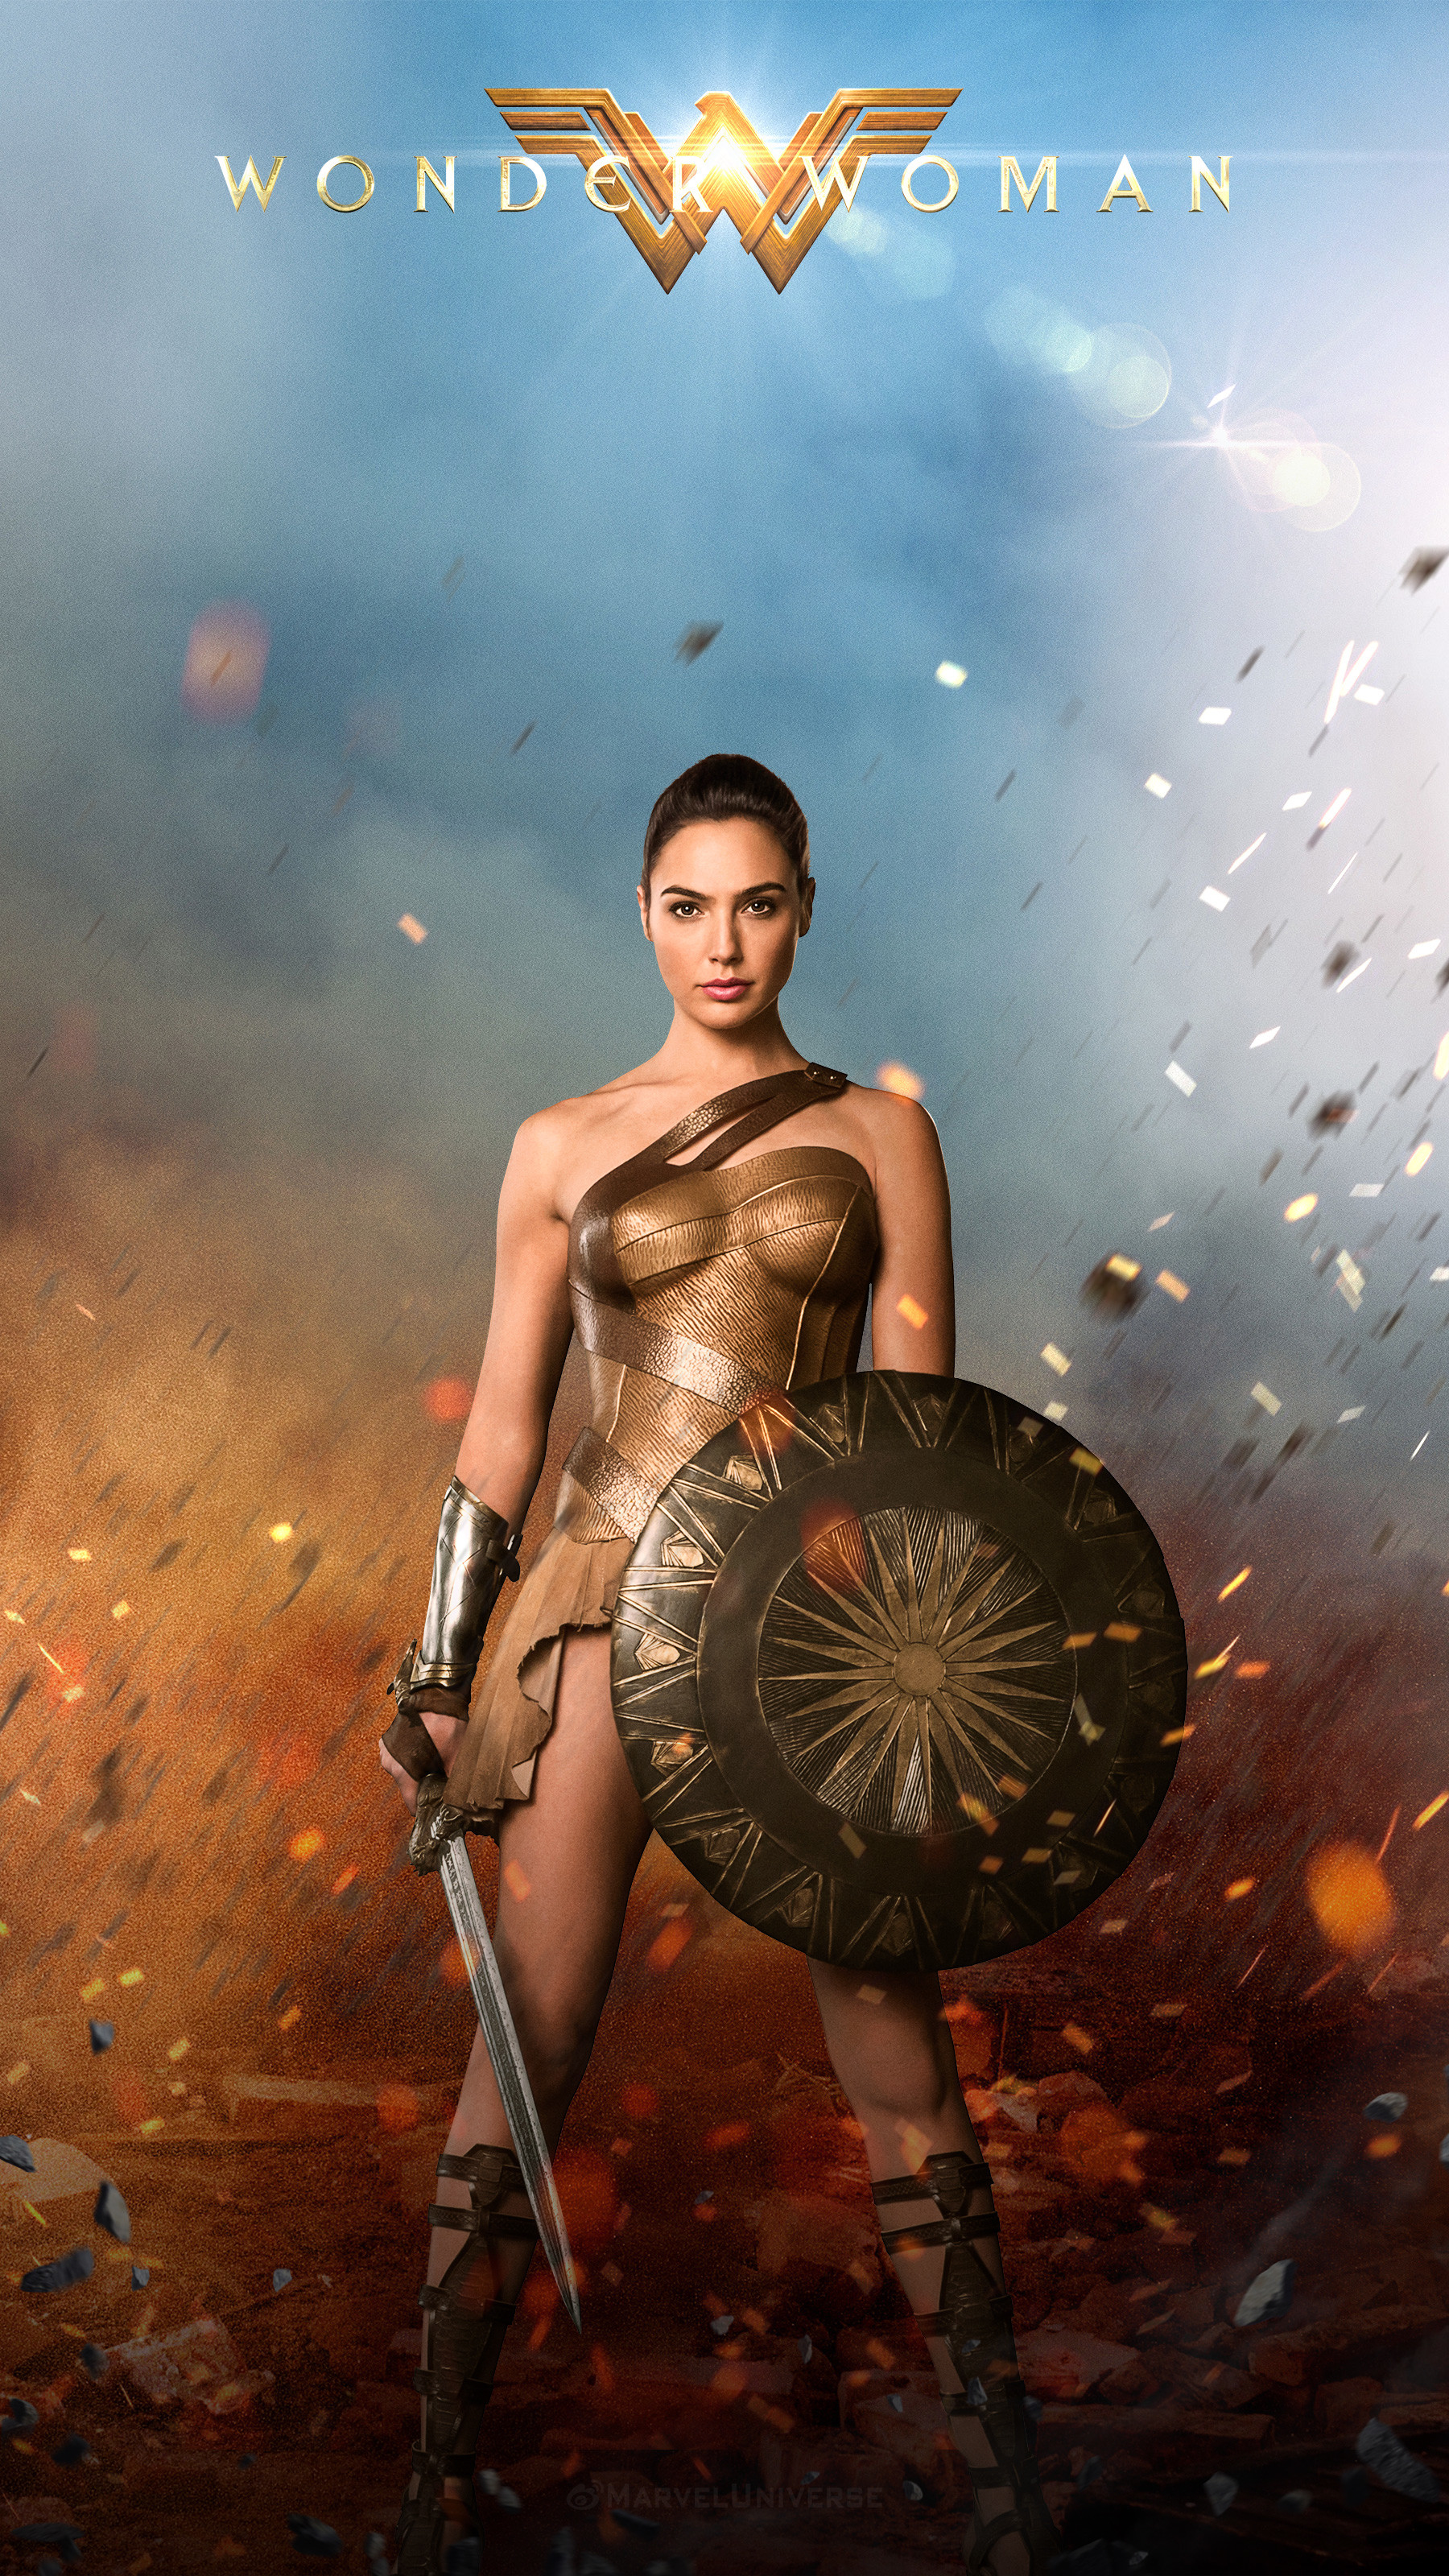 Res: 1800x3200, Wonder Woman Wallpaper 3 by Chenshijie9095 Wonder Woman Wallpaper 3 by  Chenshijie9095